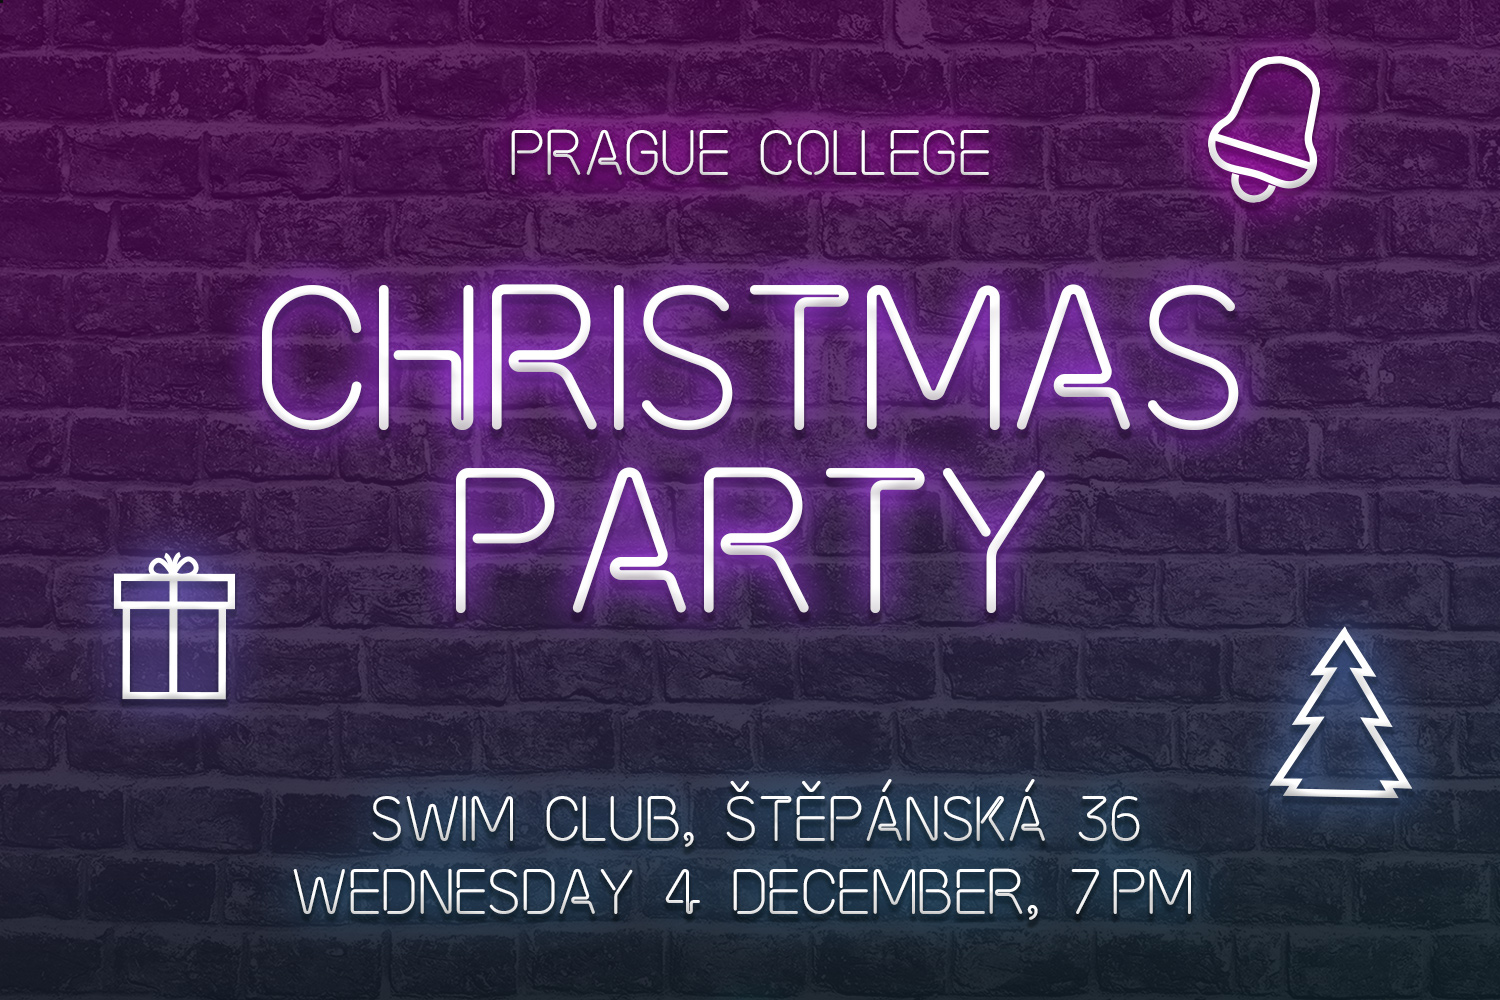 Prague College Christmas Party 2019